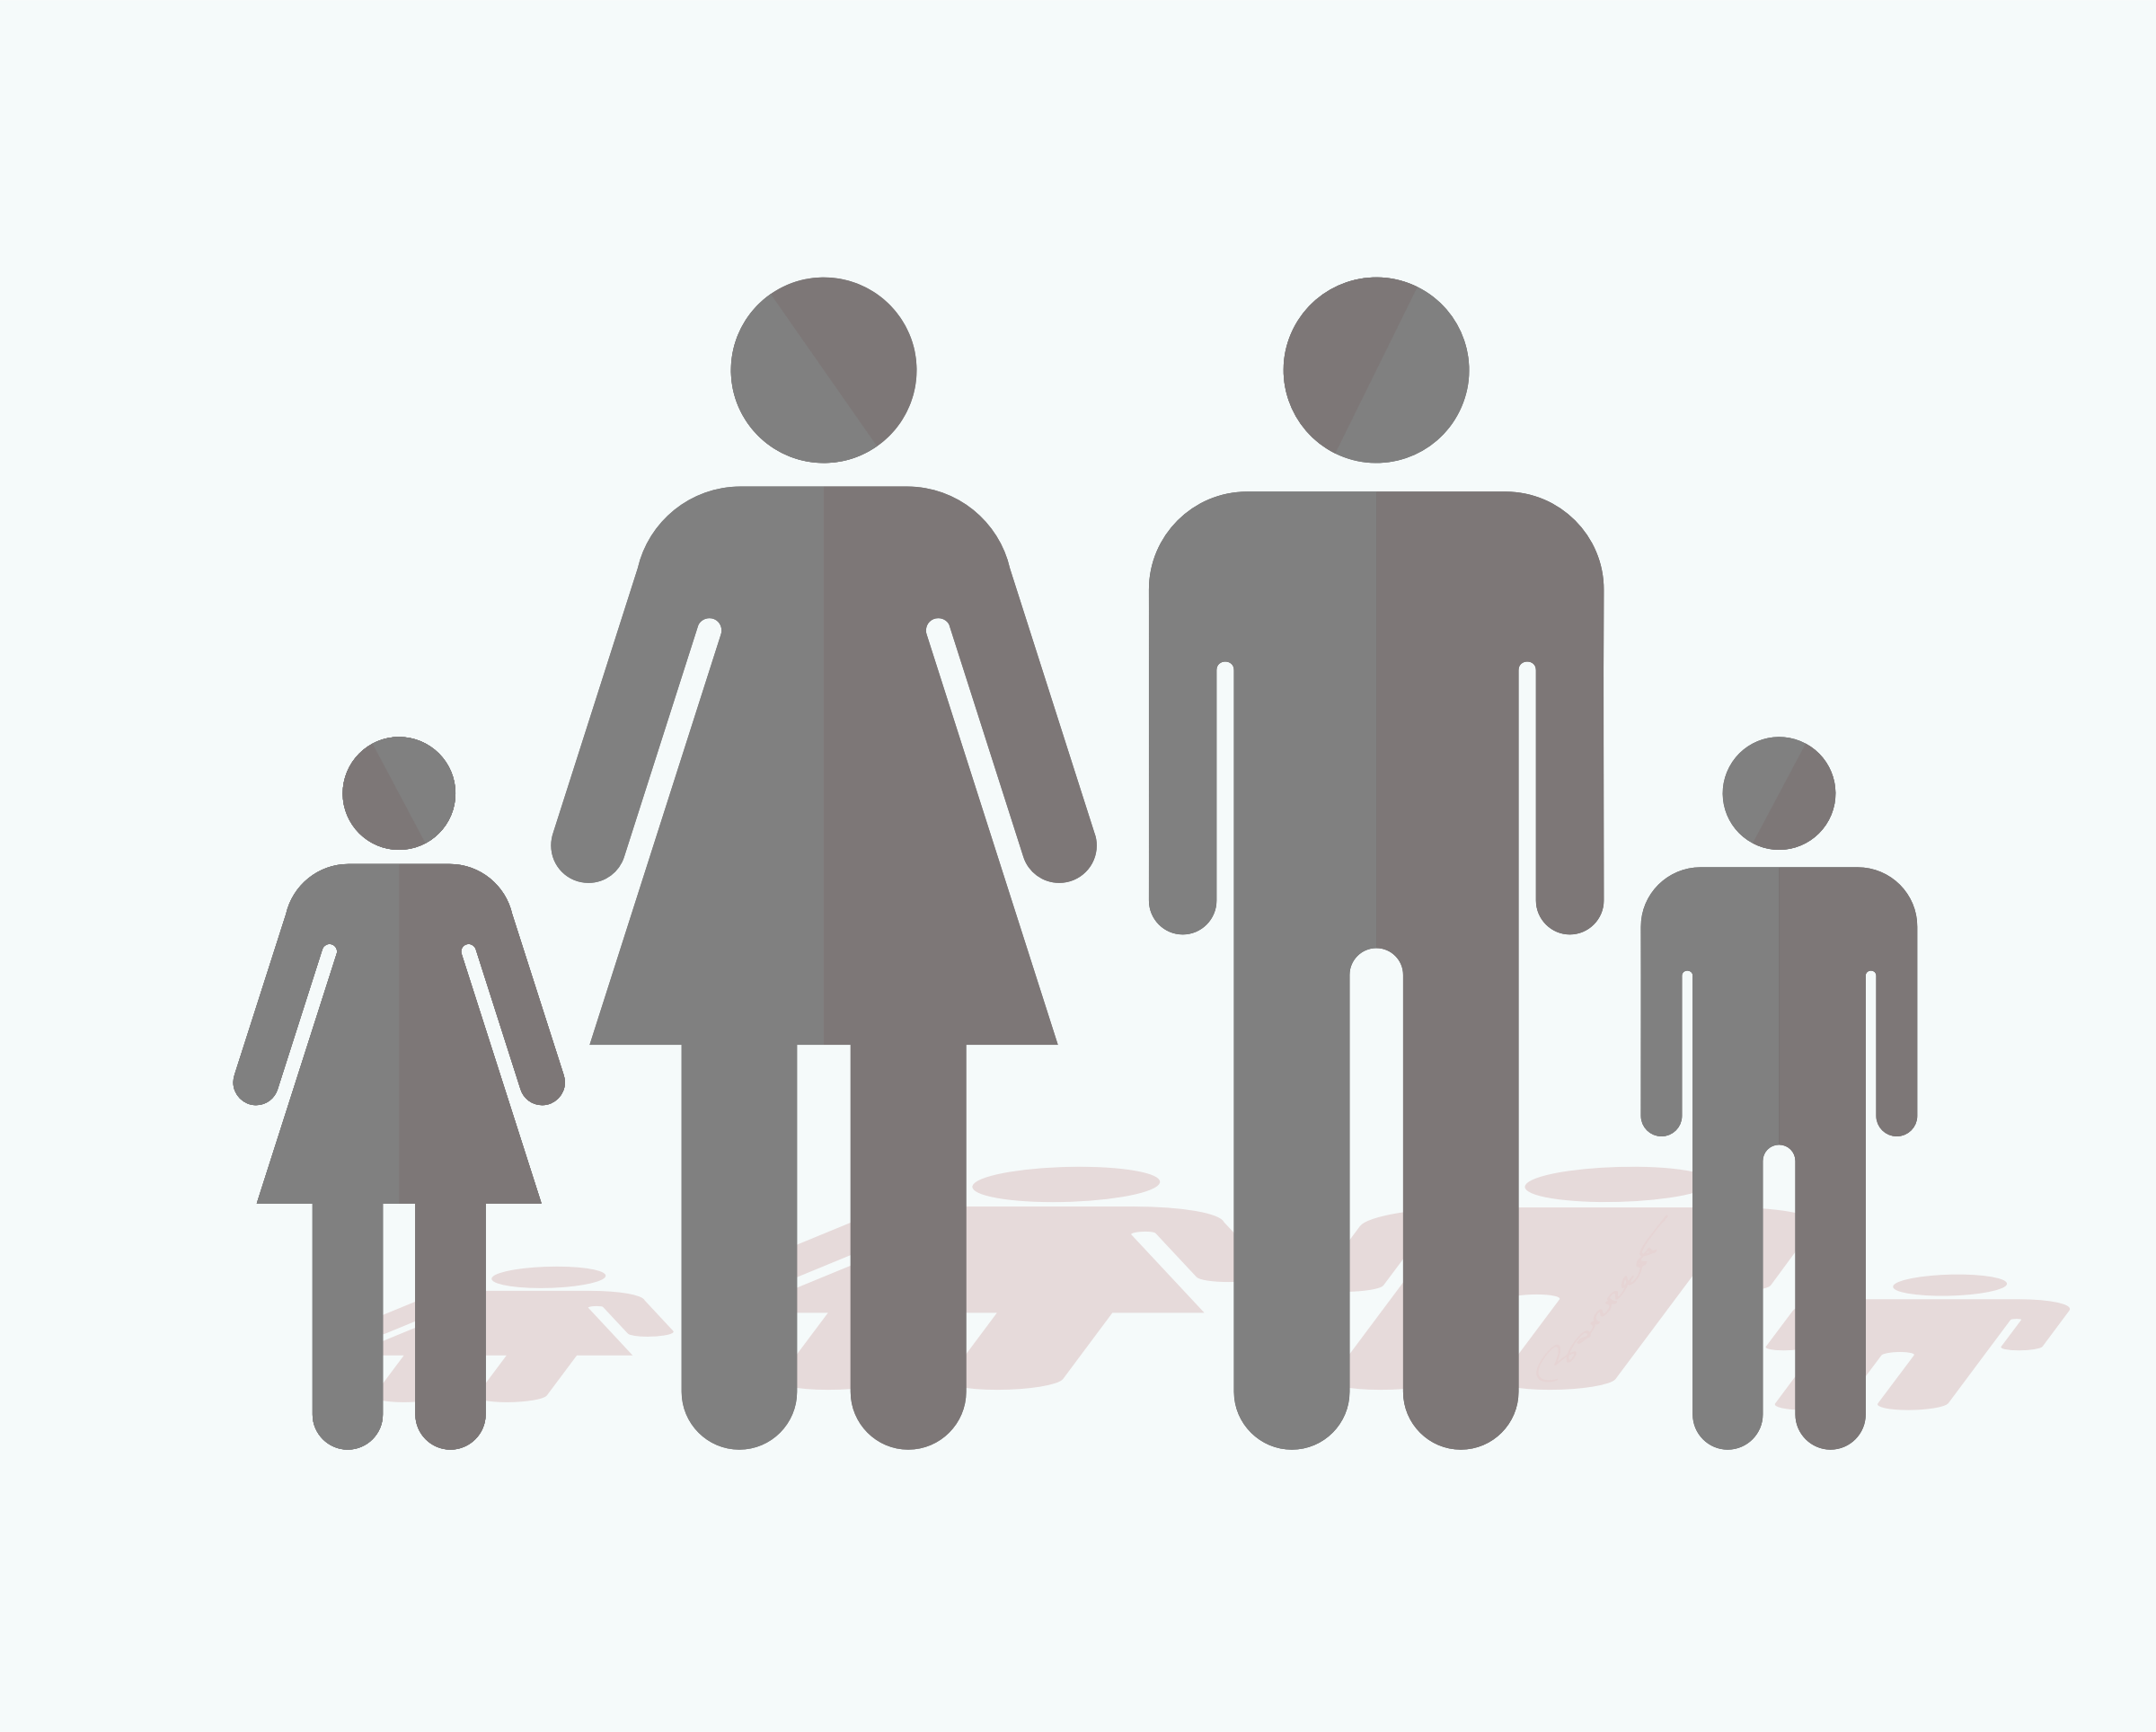 A Remixed Silhouette Family  by barrettward